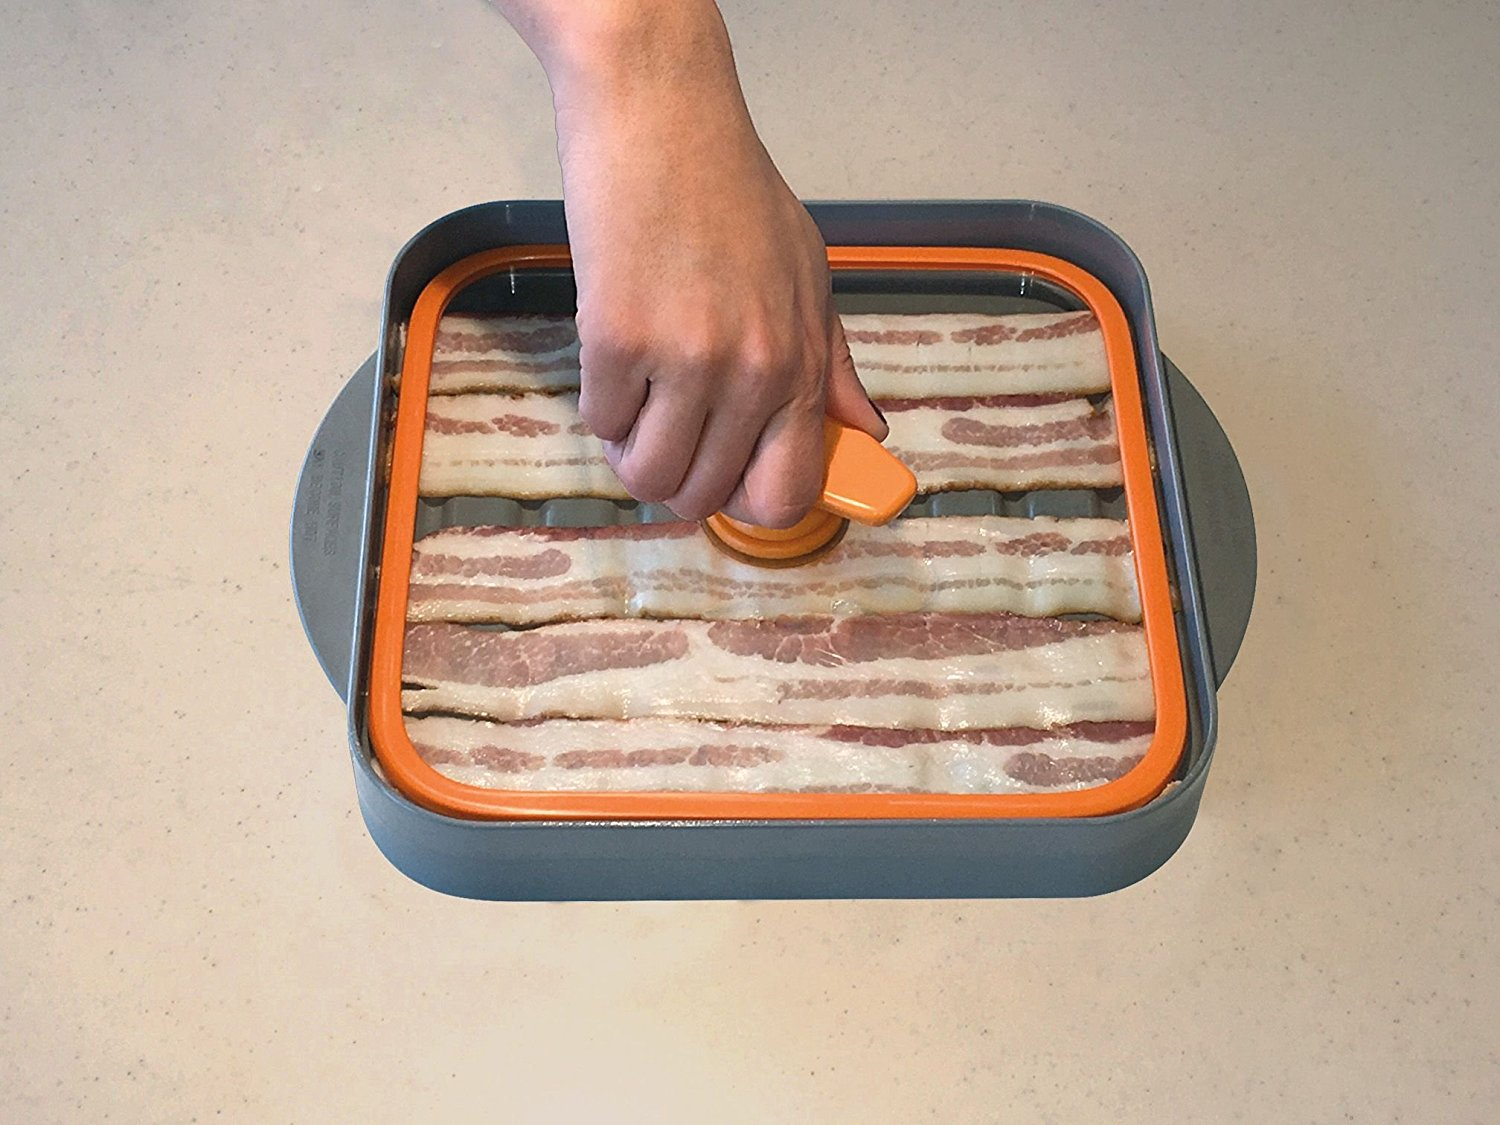 Bacon Cooker Microwave The Boss